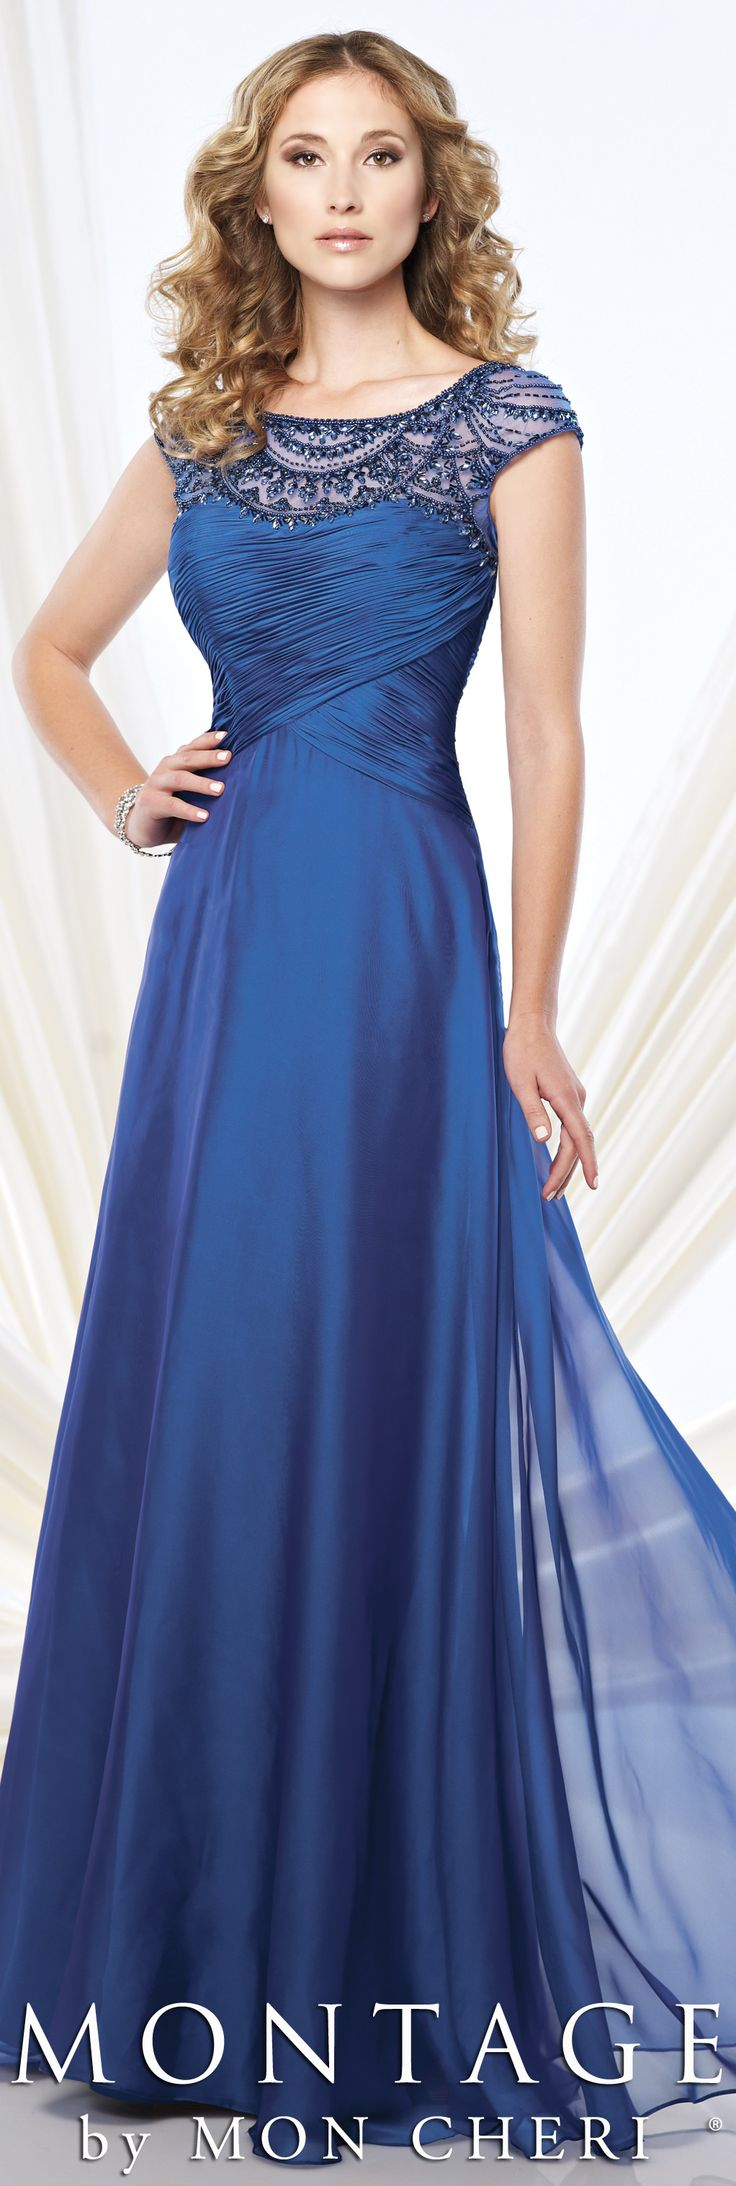 Montage by Mon Cheri Fall 2015 - Style No. 215908 #motherofthebridedress